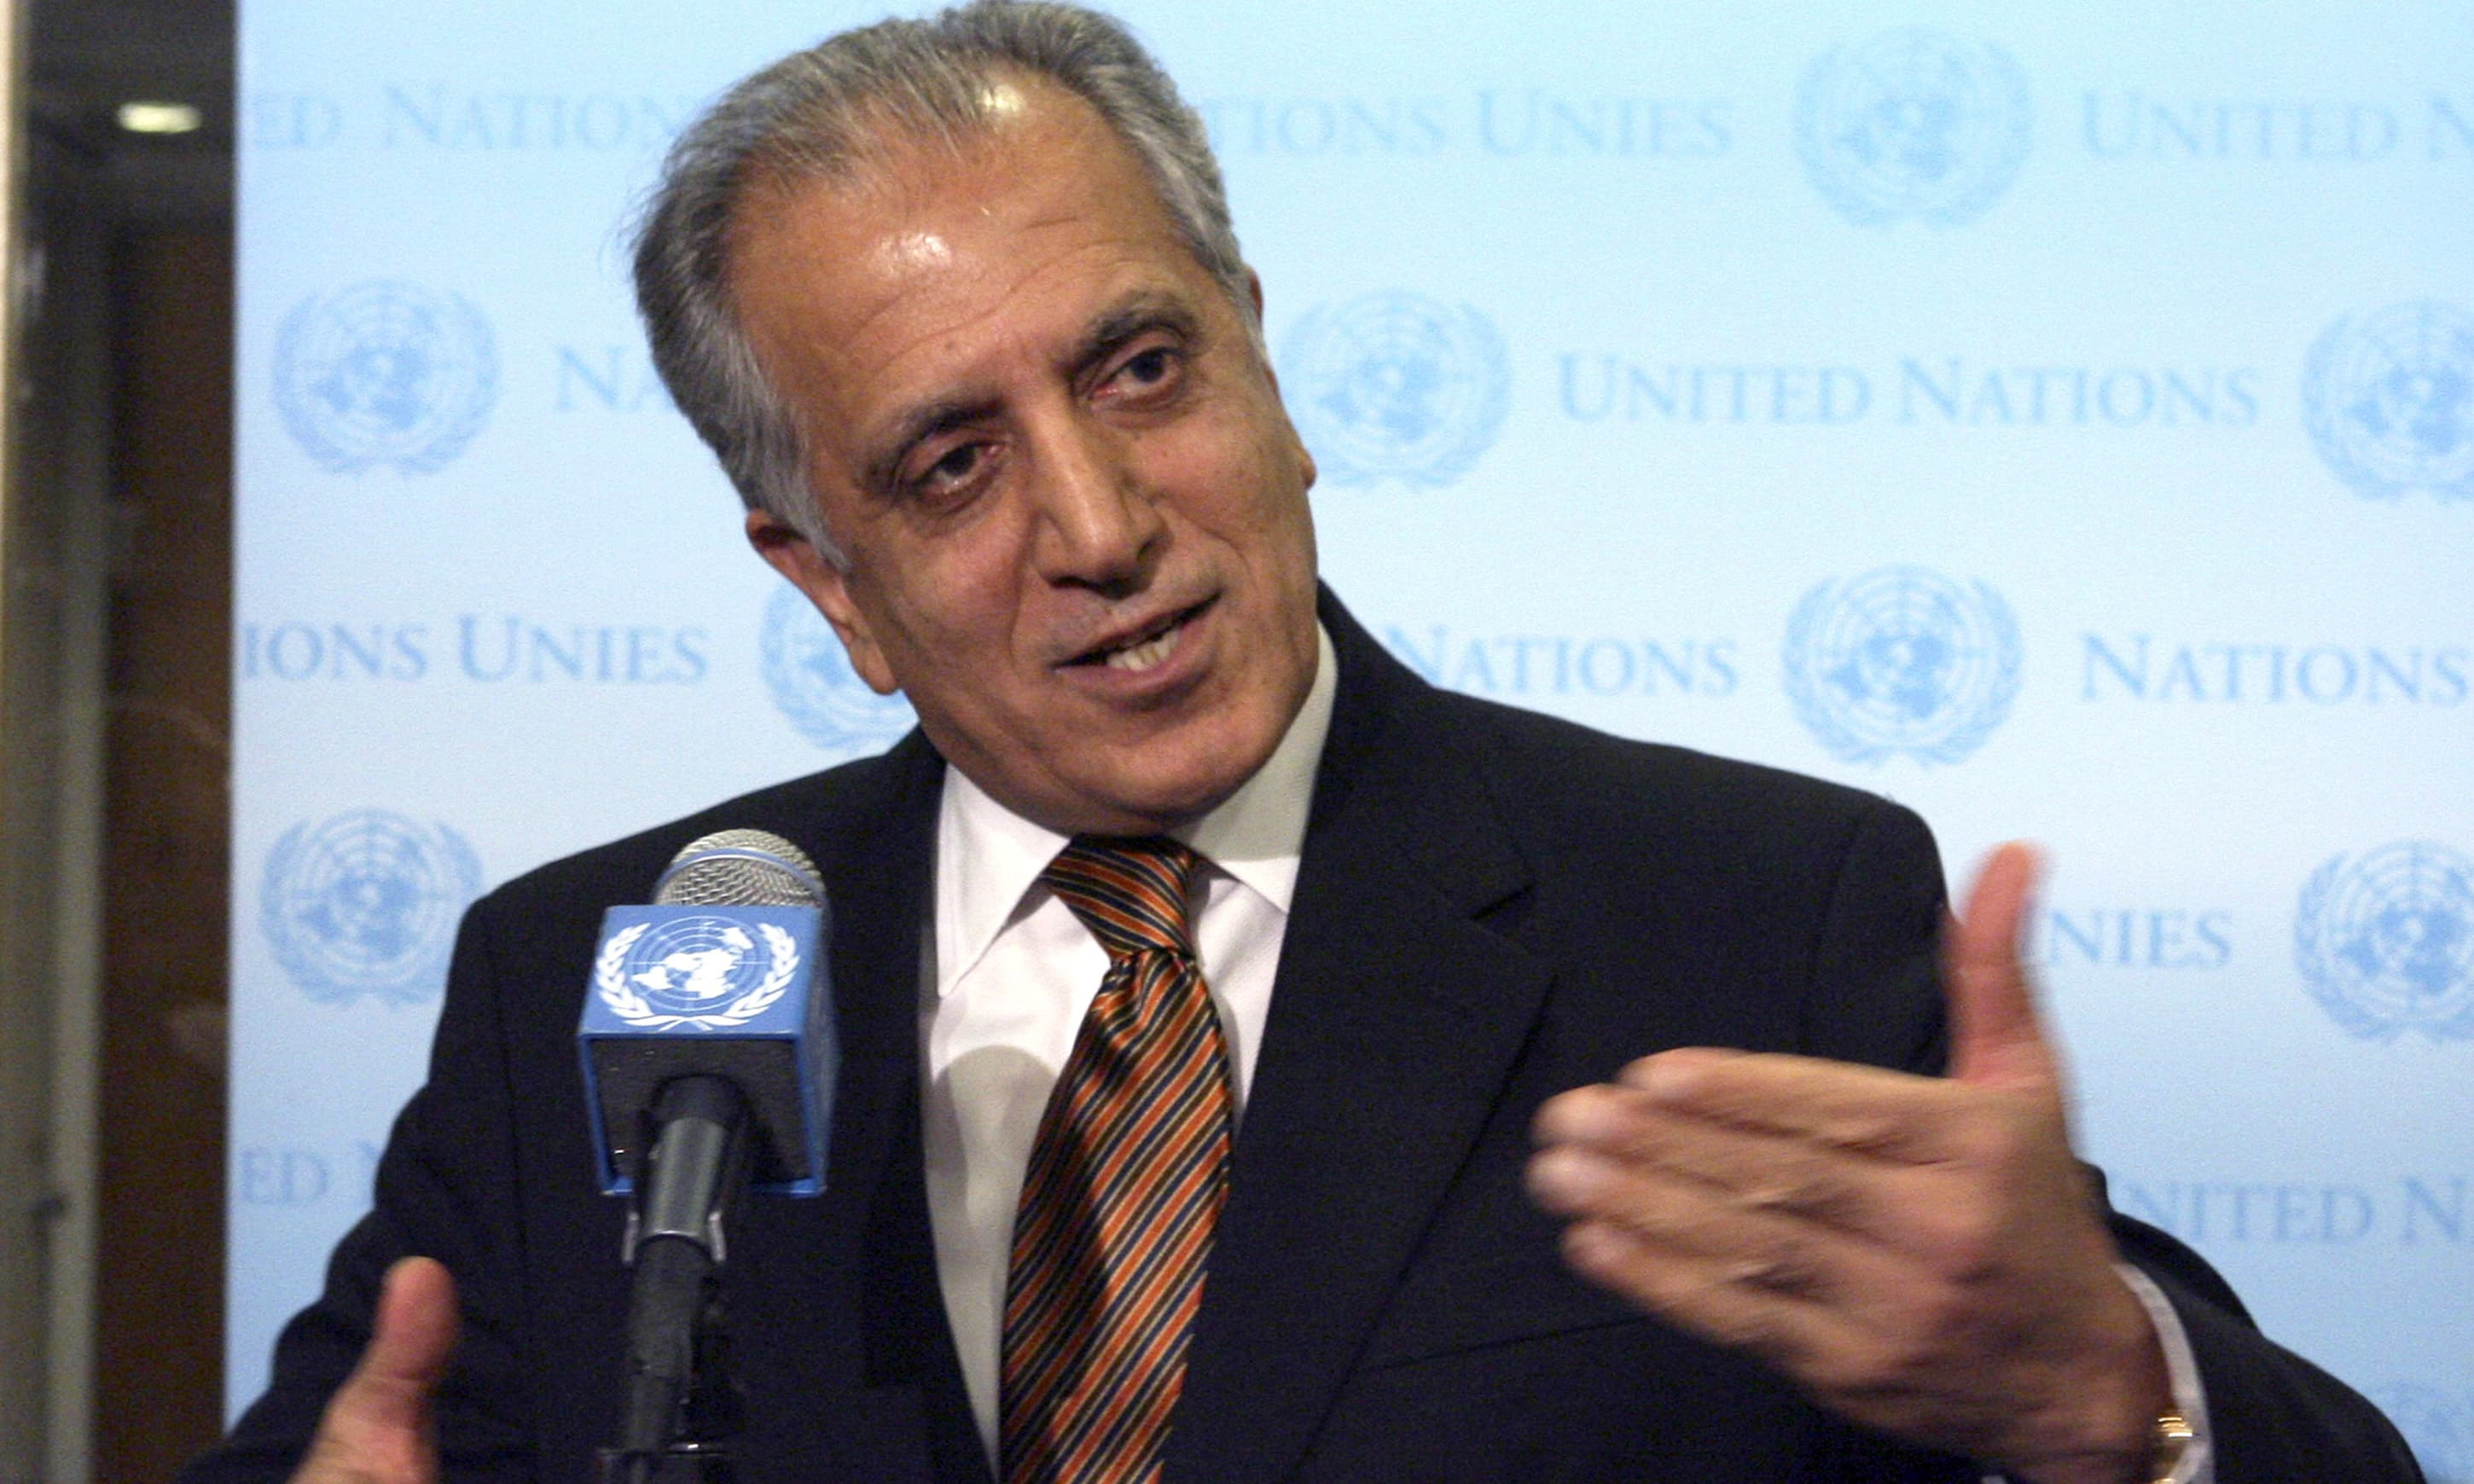 Zalmay Khalilzad: the blunt veteran US diplomat leading peace efforts in Afghanistan